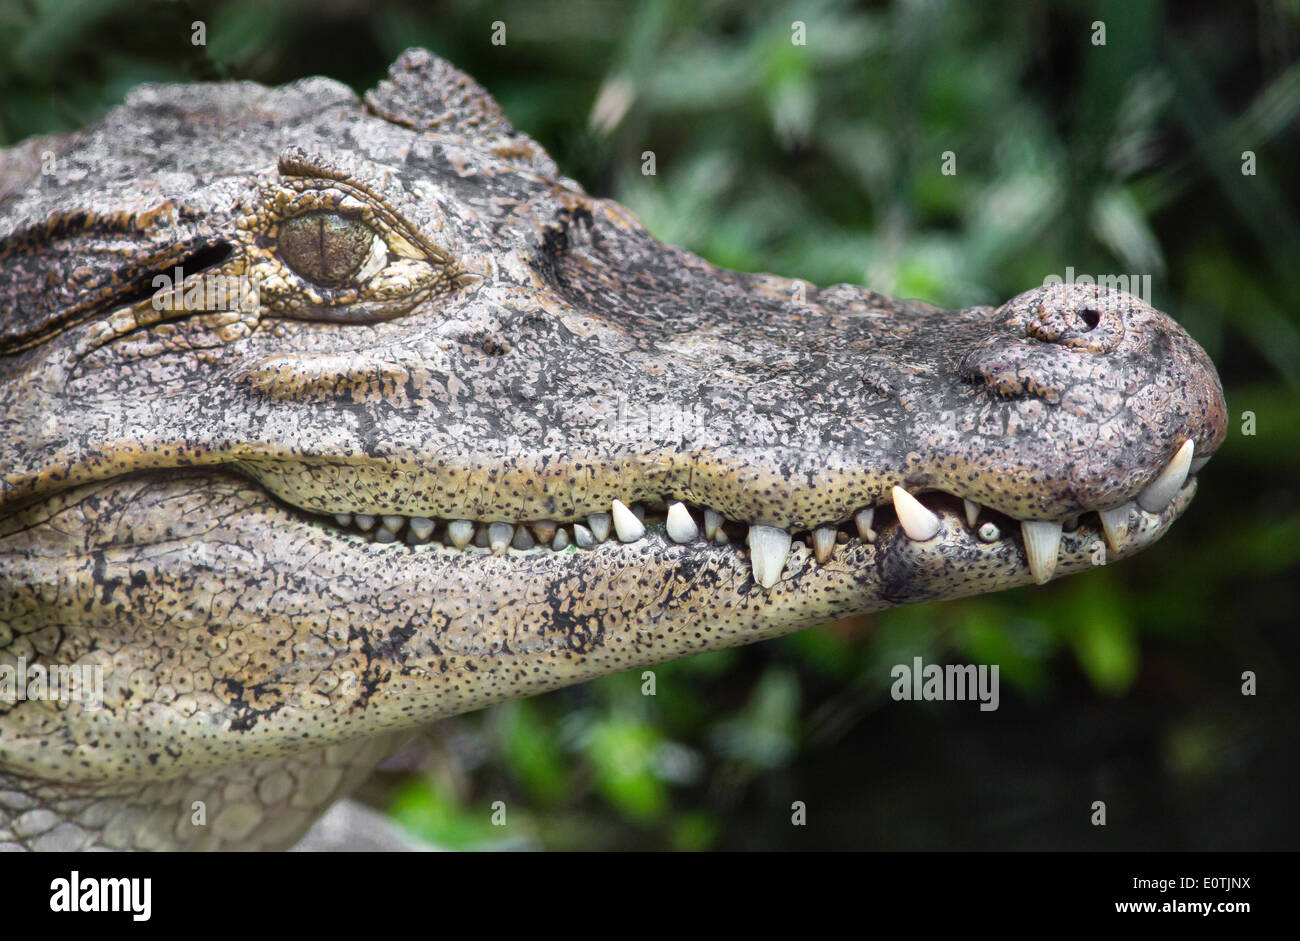 Alluring grin of a young Black Caiman Melanosuchus niger - a captive animal from a Costa Rican bird park - Stock Image